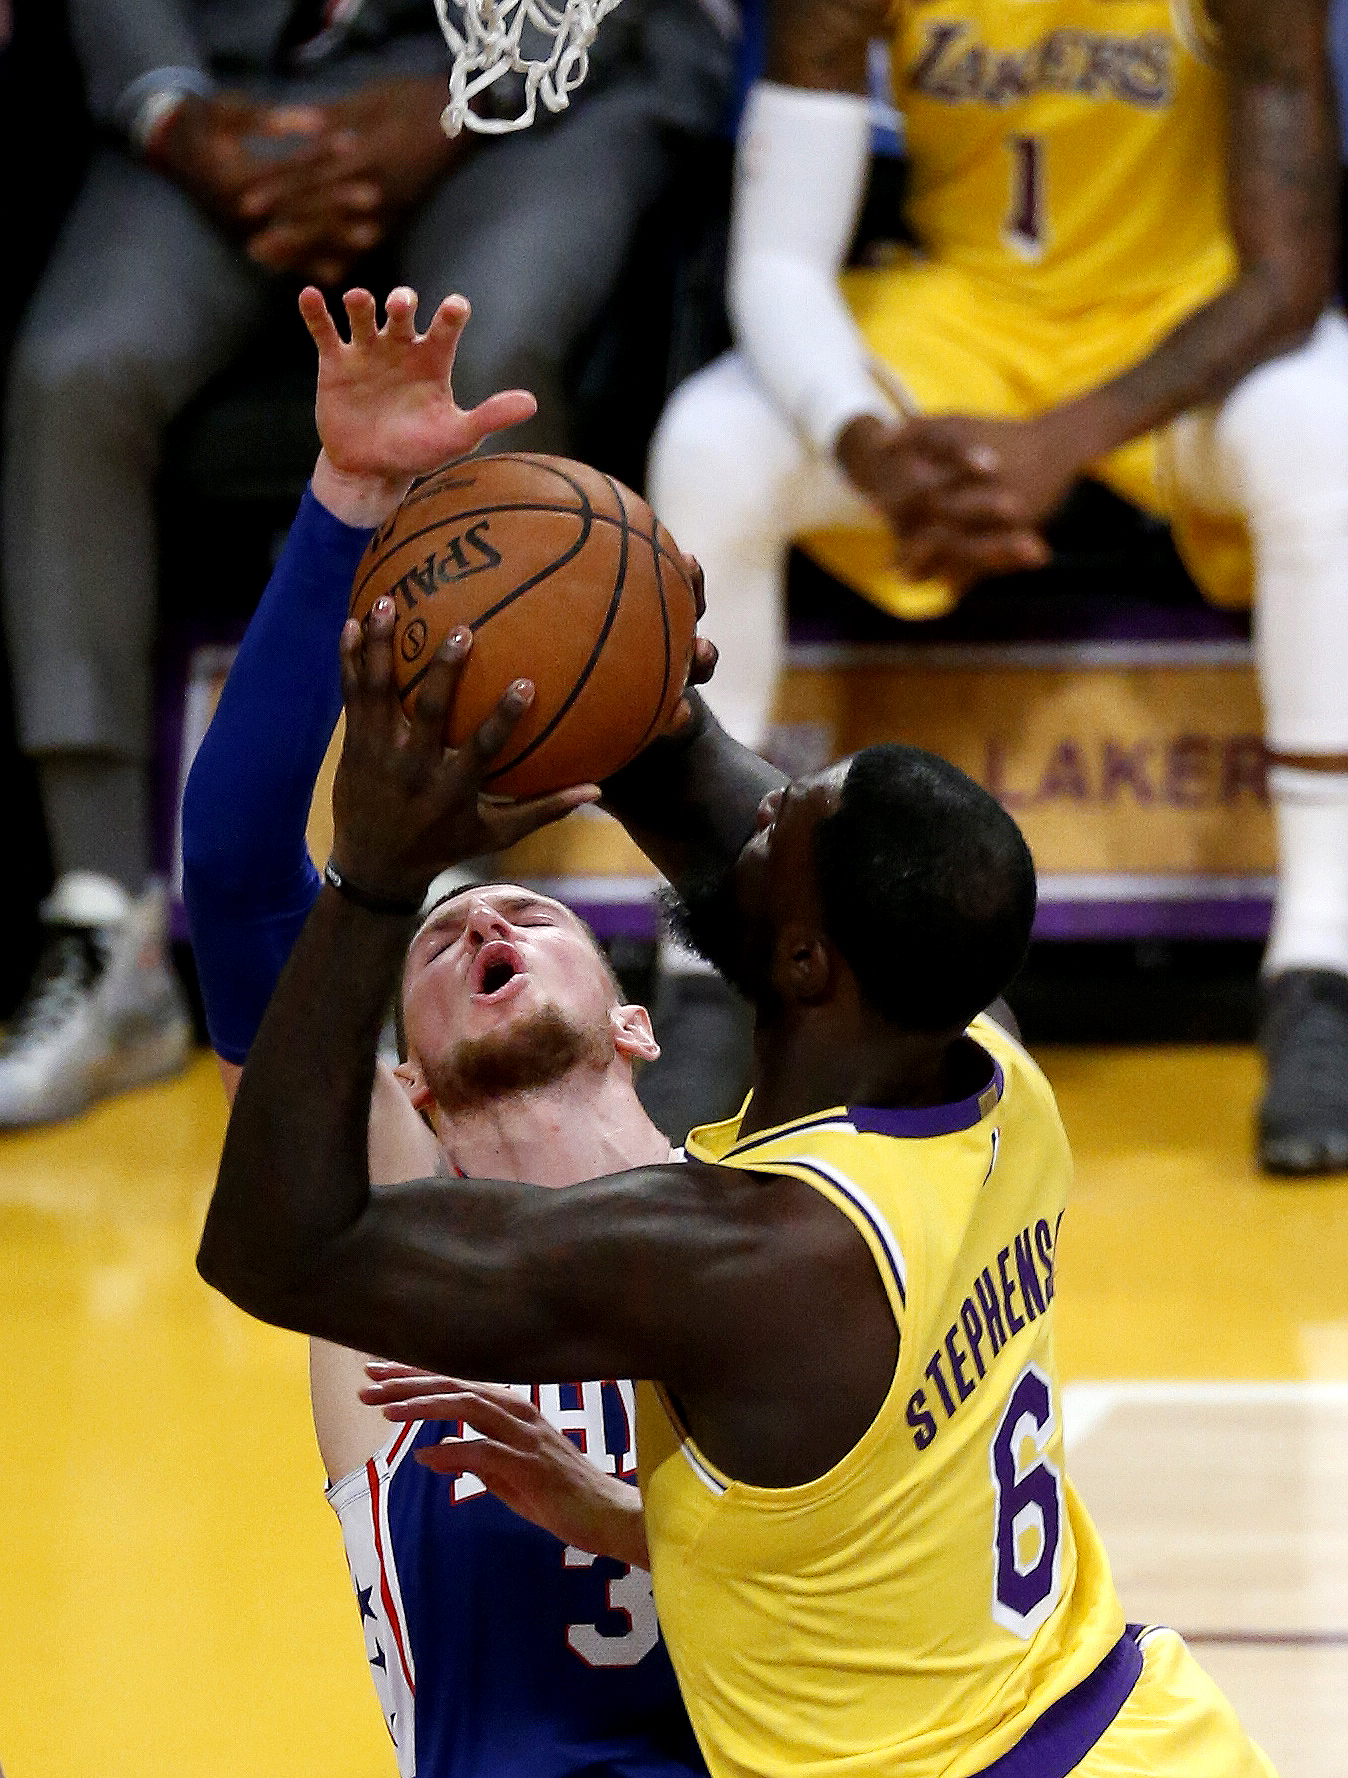 Philadelphia 76ers' Mike Muscala (31) defends as  Los Angeles Lakers' Lance Stephenson (6) shoots during an NBA basketball game, Jan. 29, 2019, in Los Angeles.